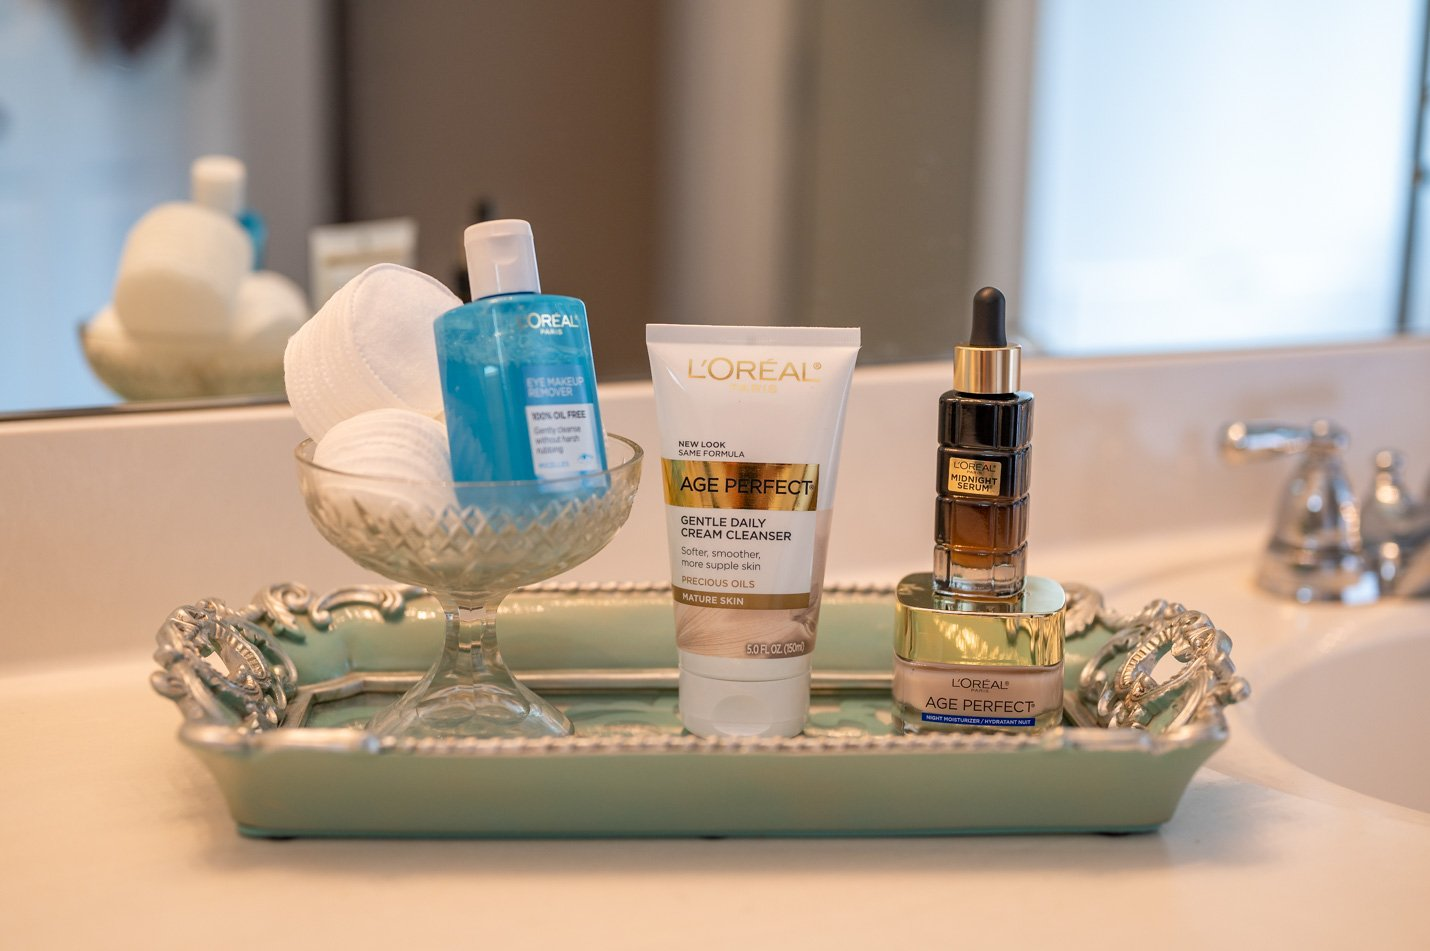 L'Oreal Skincare Products from Walmart